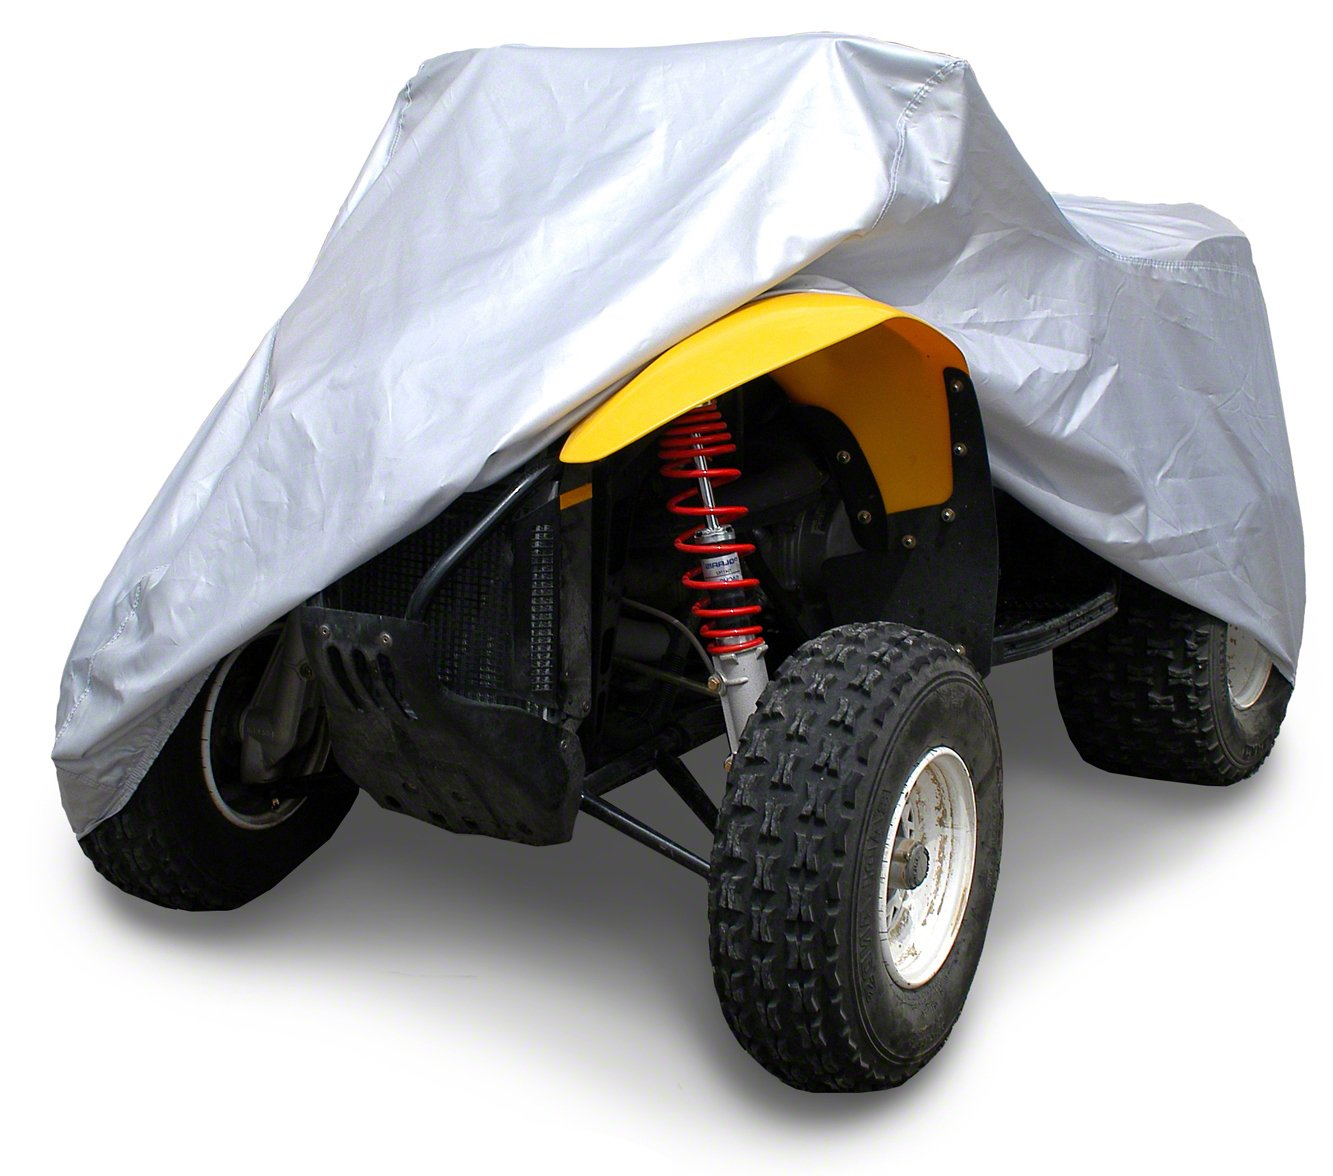 Coverking//MODA UAVLGNRE62 Universal Fit All-Weather Waterproof Cover for ATV Large with Rack Silverguard